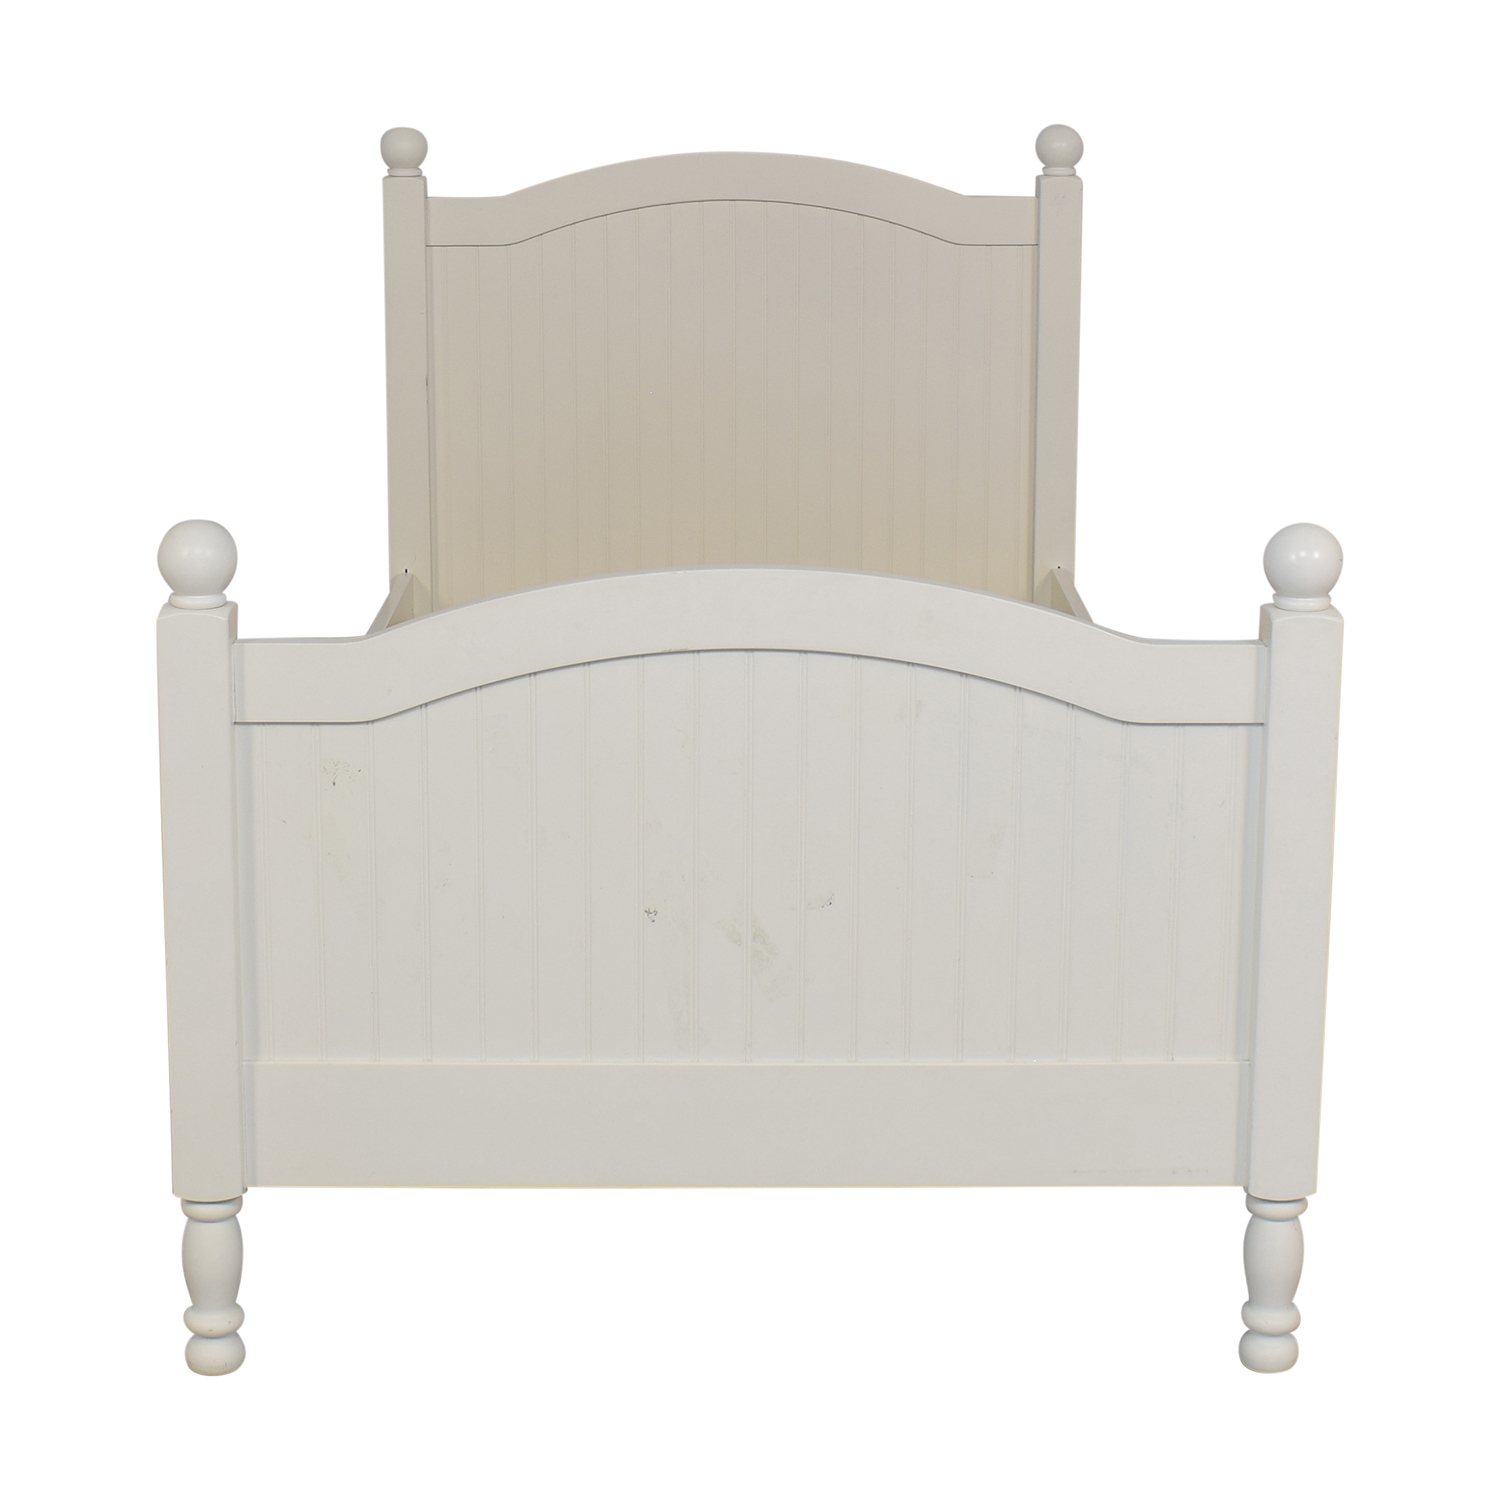 Pottery Barn Kids Pottery Barn Kids Catalina Twin Bed Simply White price